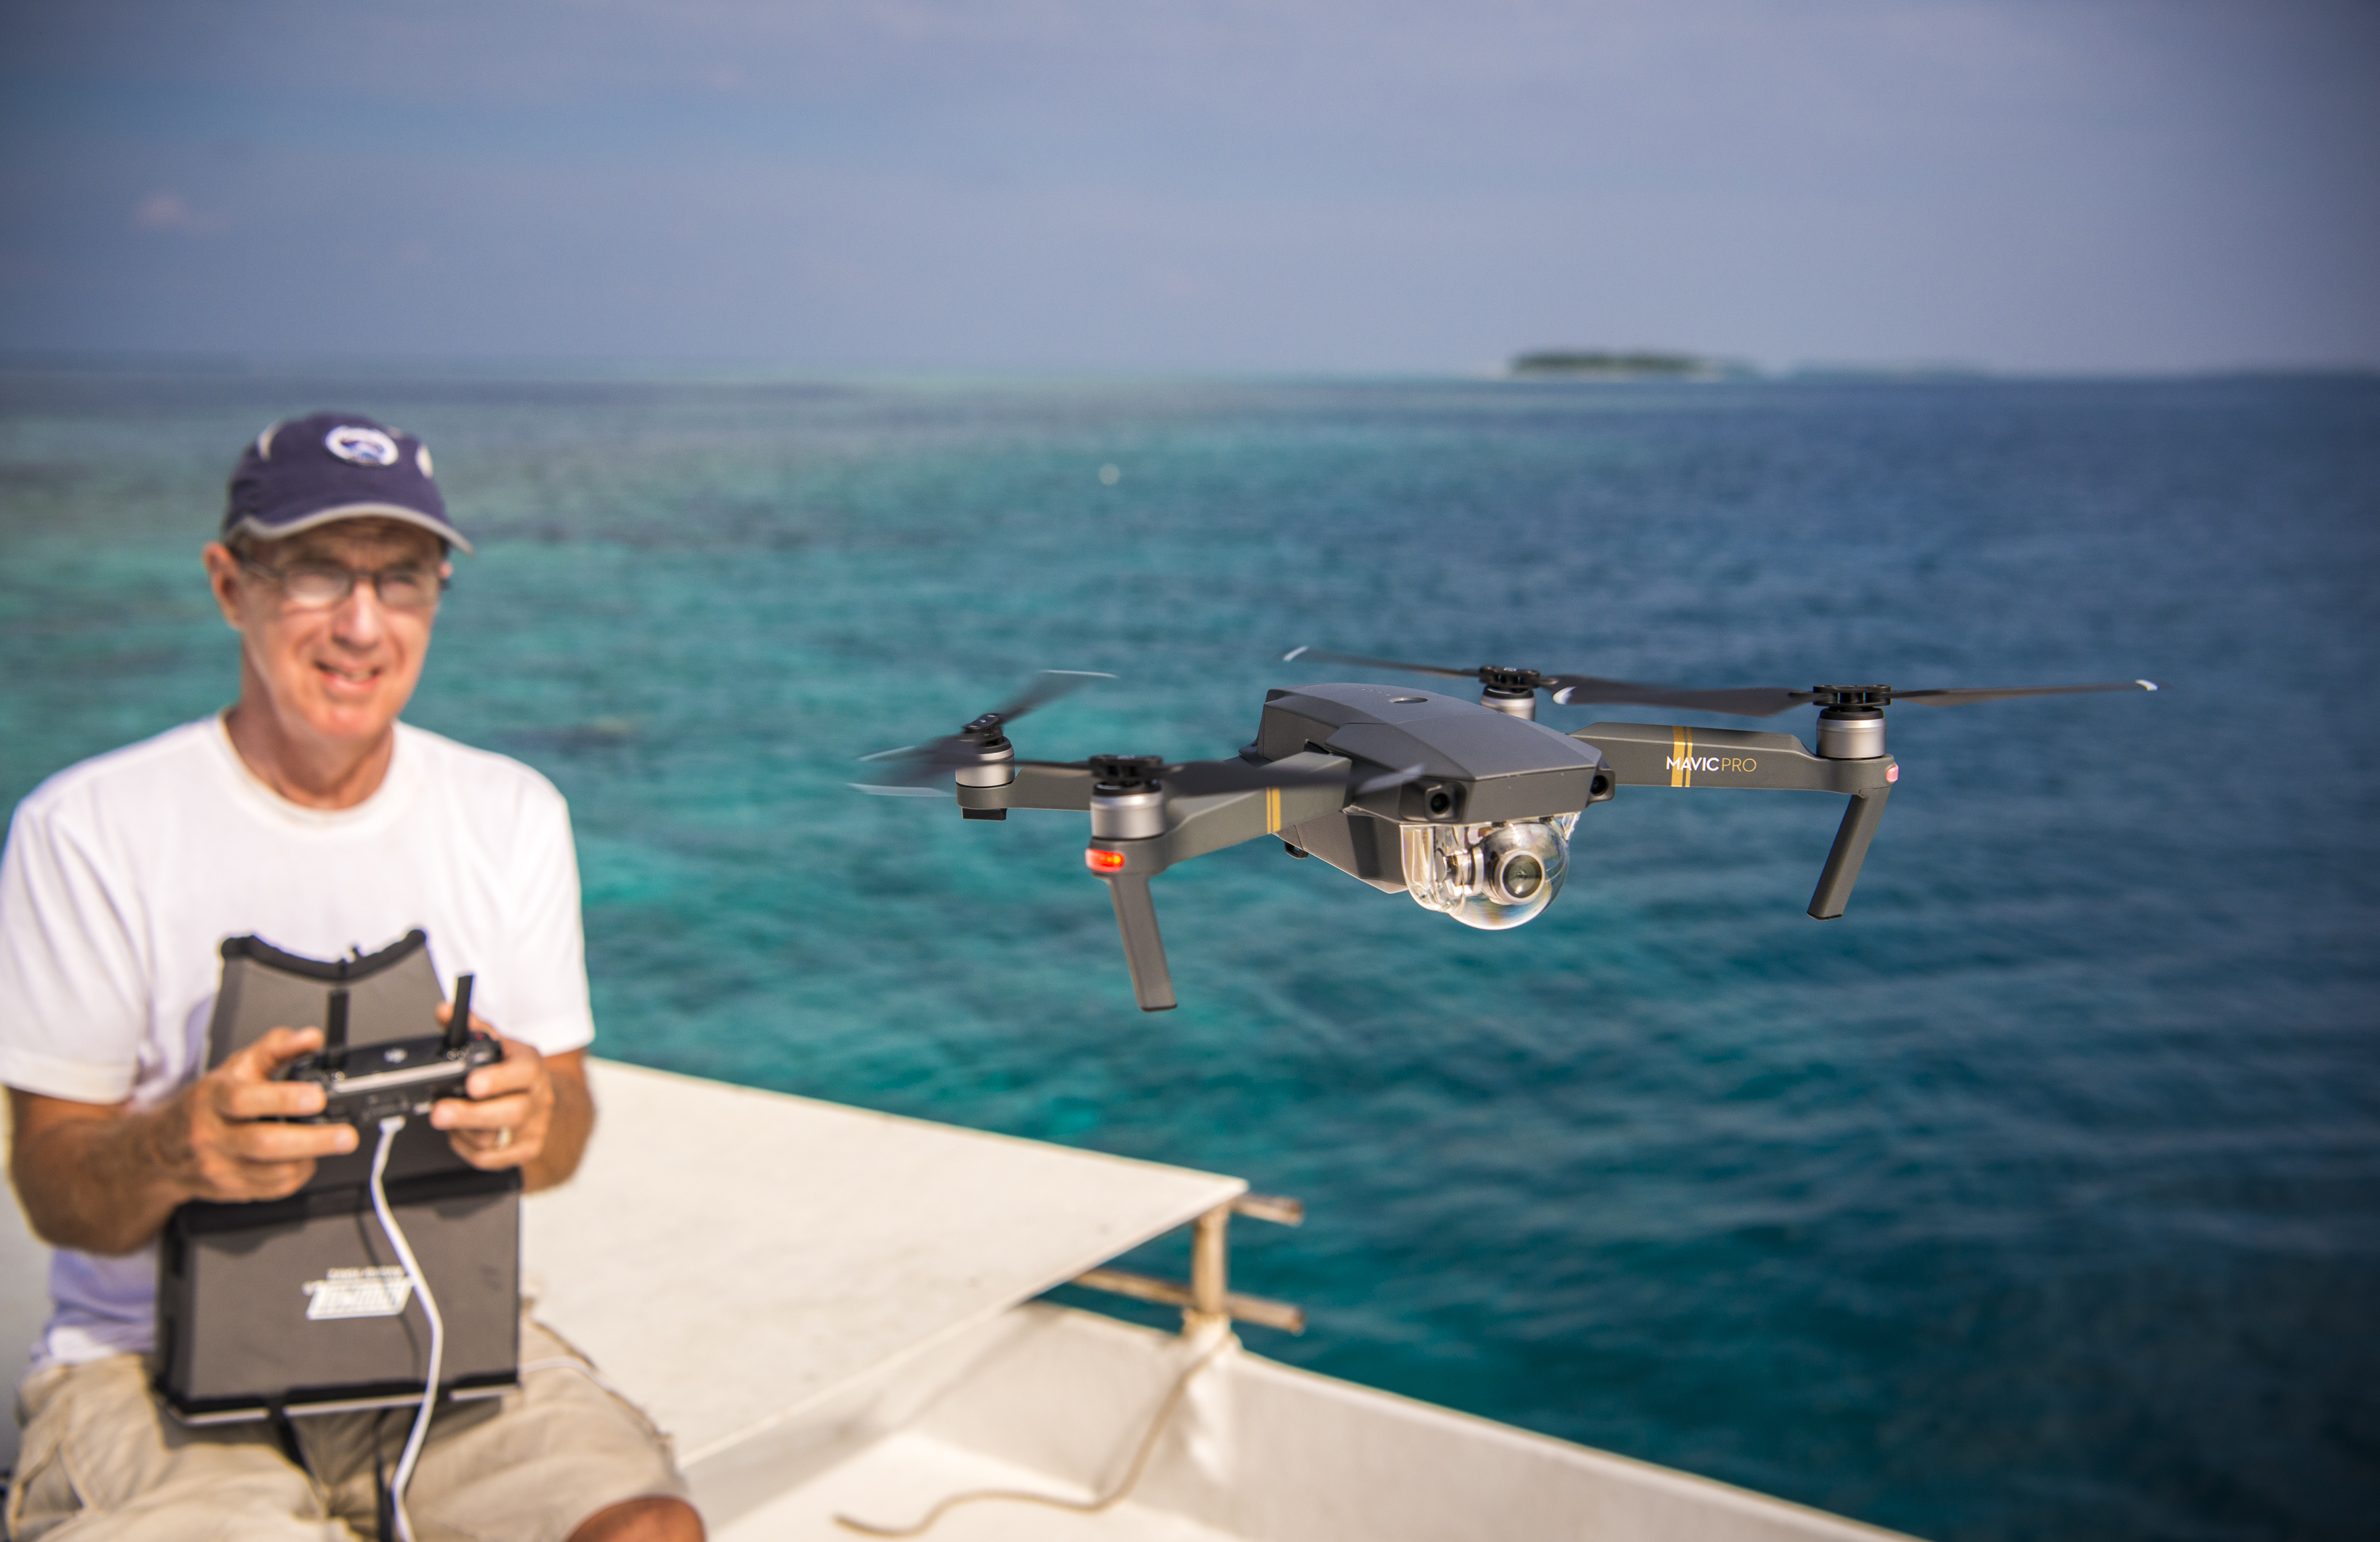 CEO Iain Kerrflies the Mavic Pro while at the Parley conference in the Maldive. (Photo: Christian Miller)